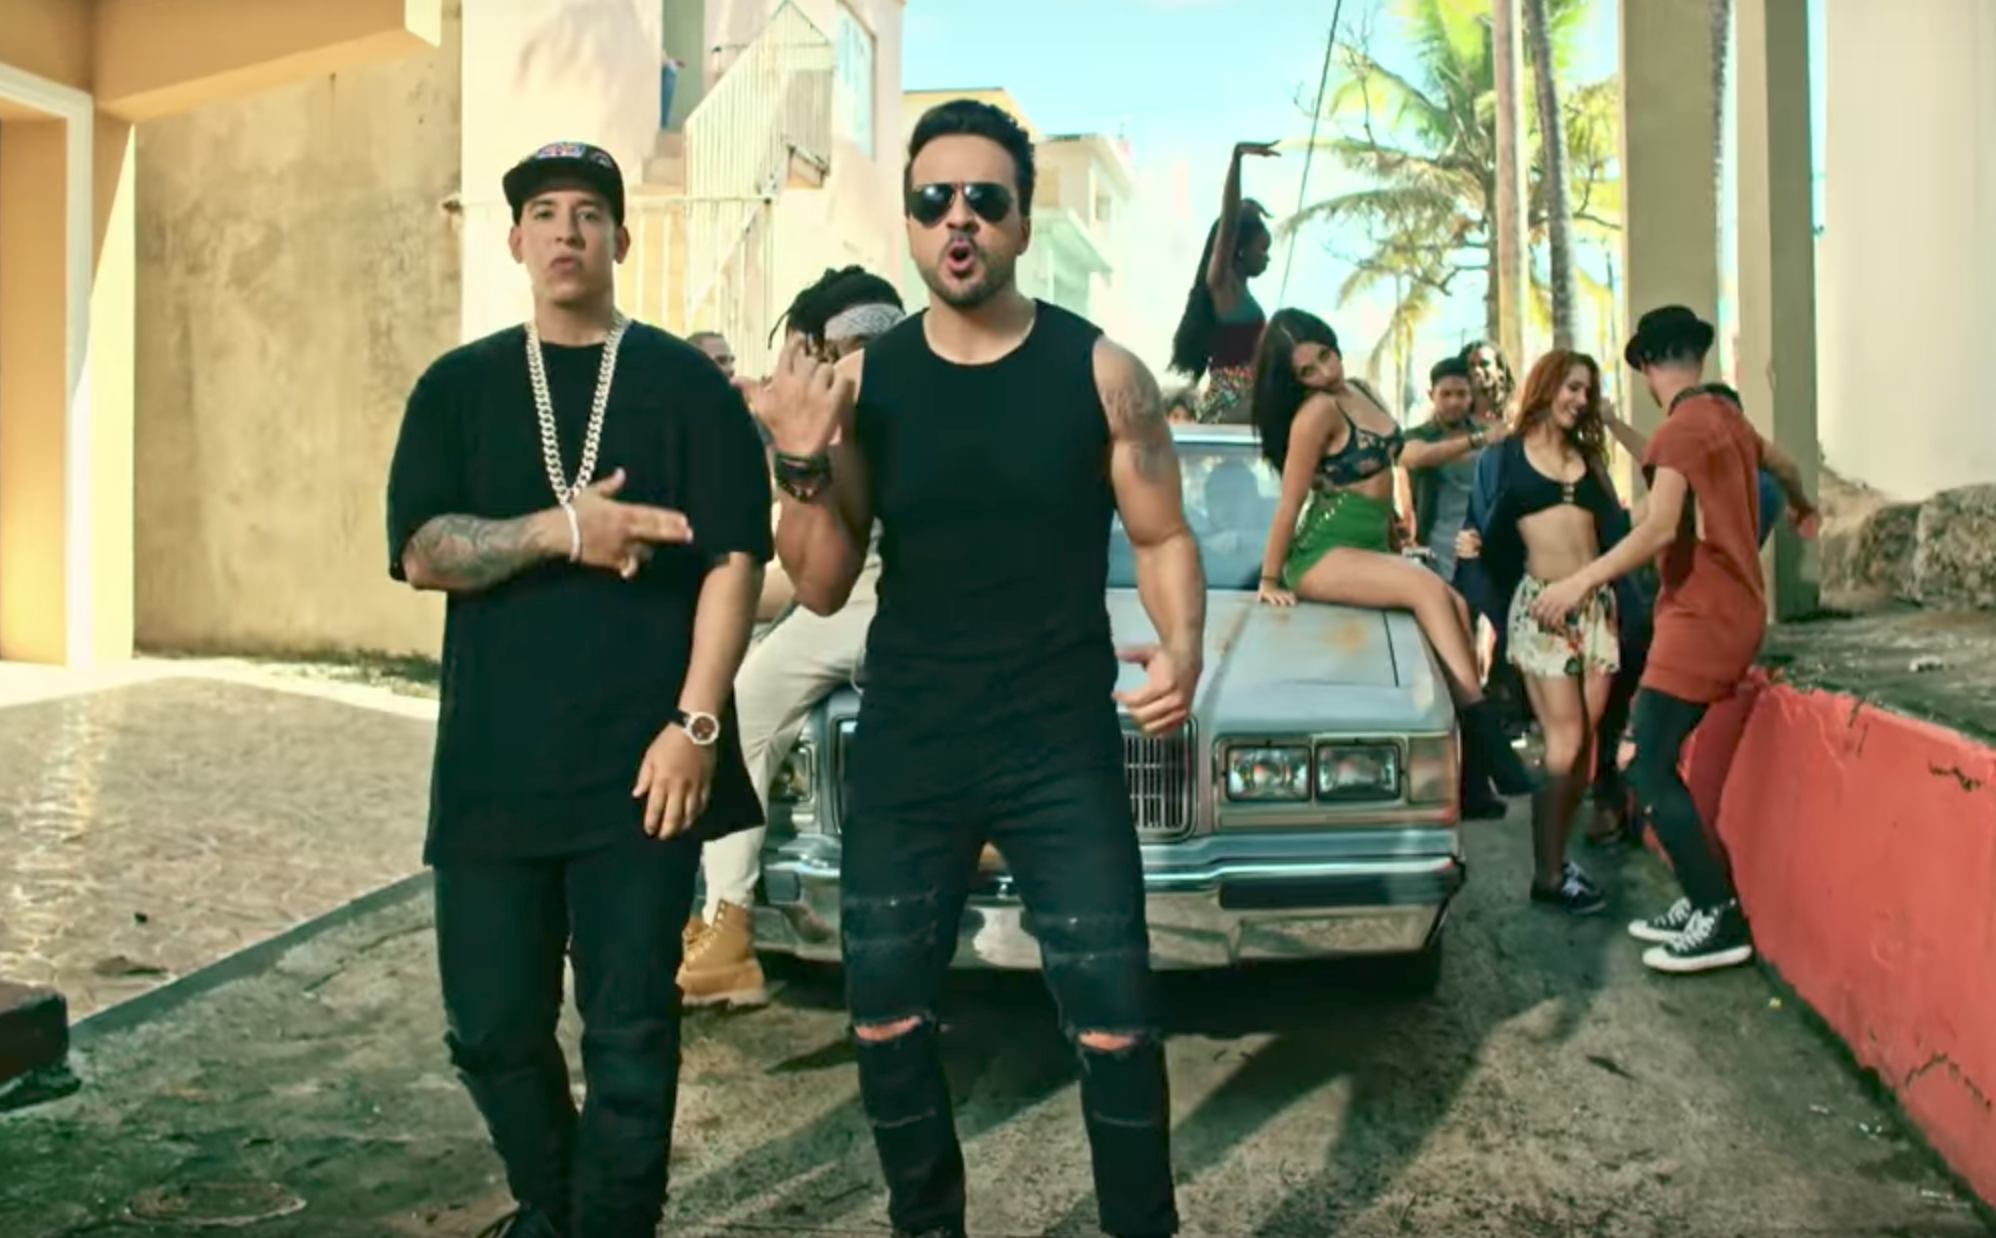 Despacito' is the new most-watched YouTube video ever with